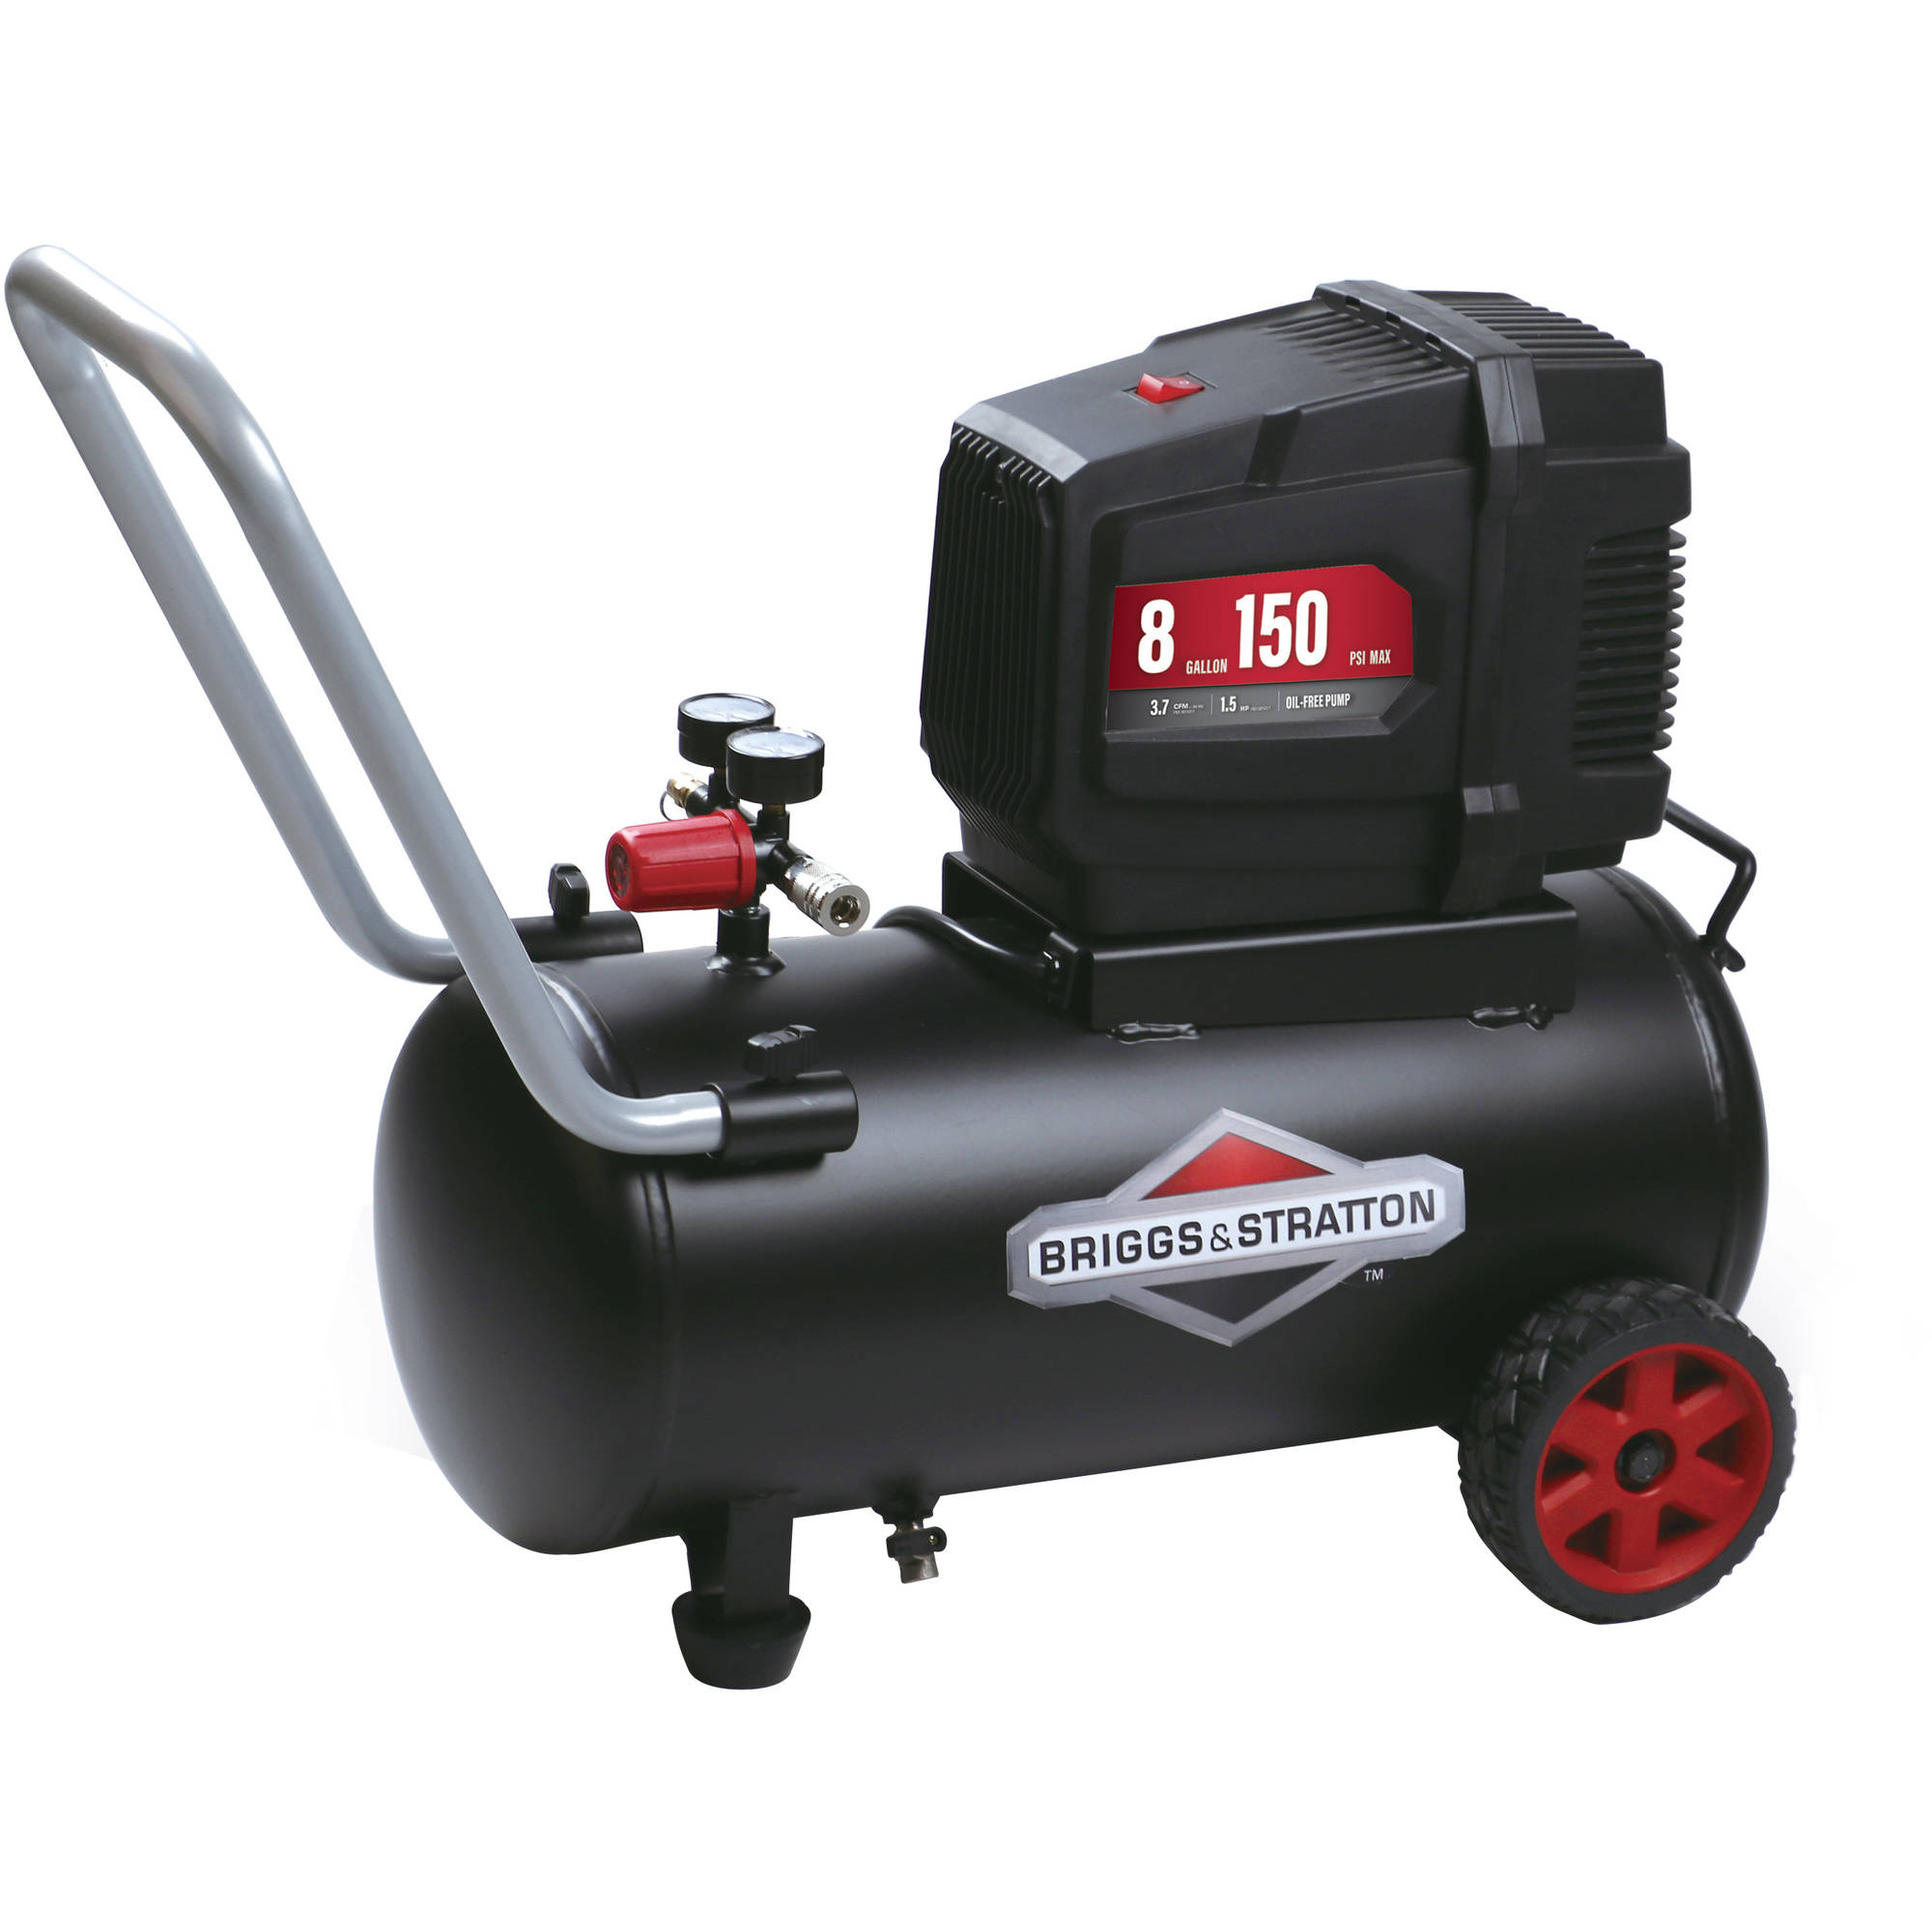 Briggs & Stratton 8 Gallon Hotdog Oil-free Air Compressor